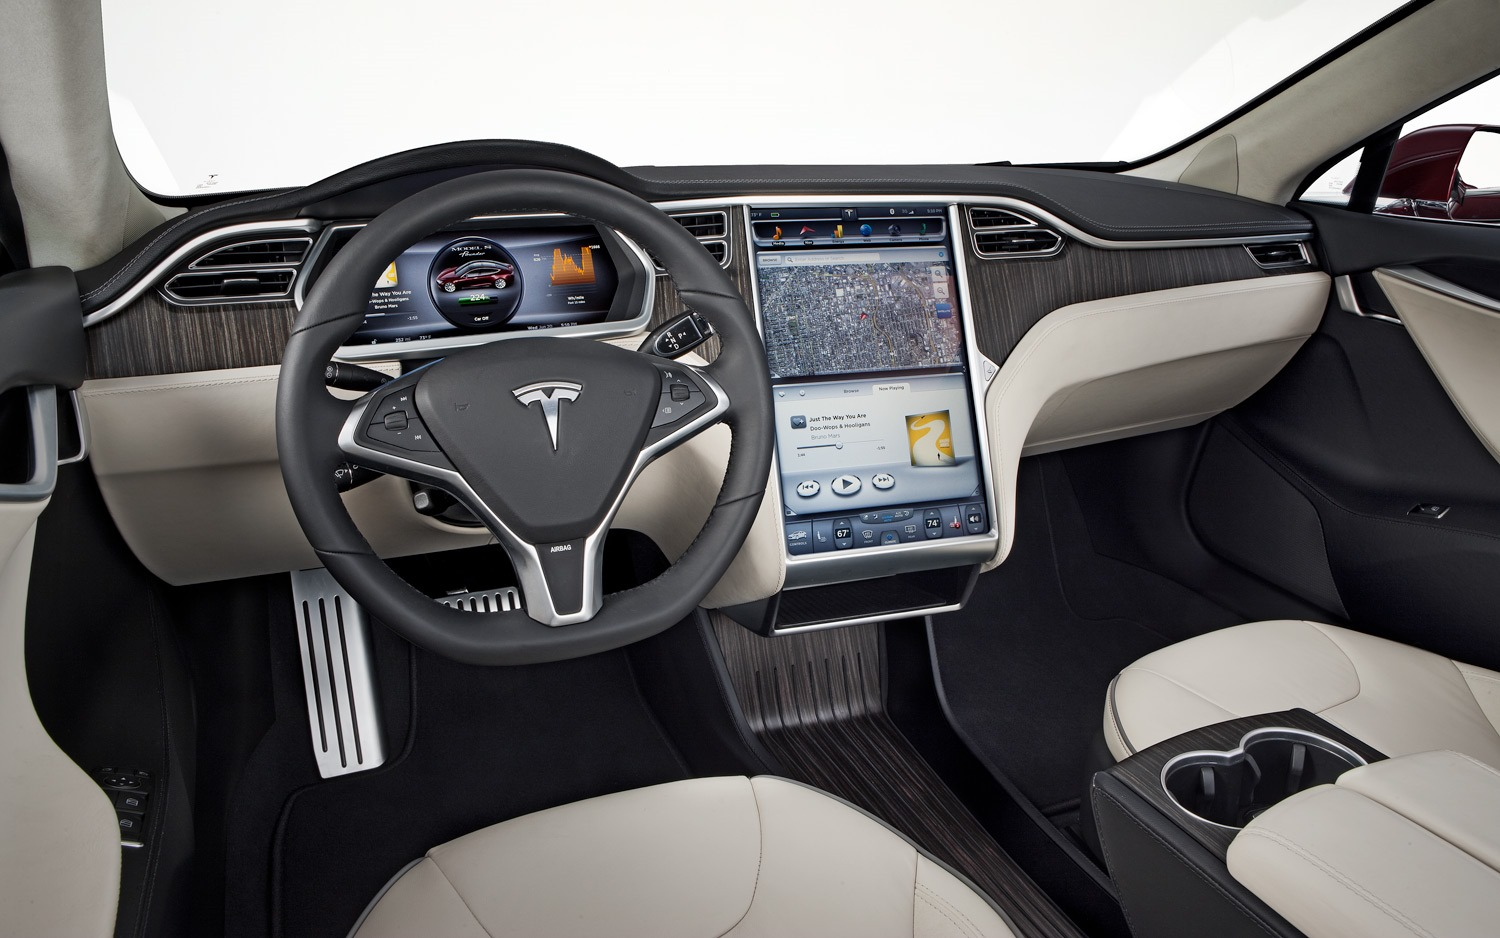 Elon Musk Says A Full Android Emulator And Chrome Browser Could Be Coming To The Tesla Model S